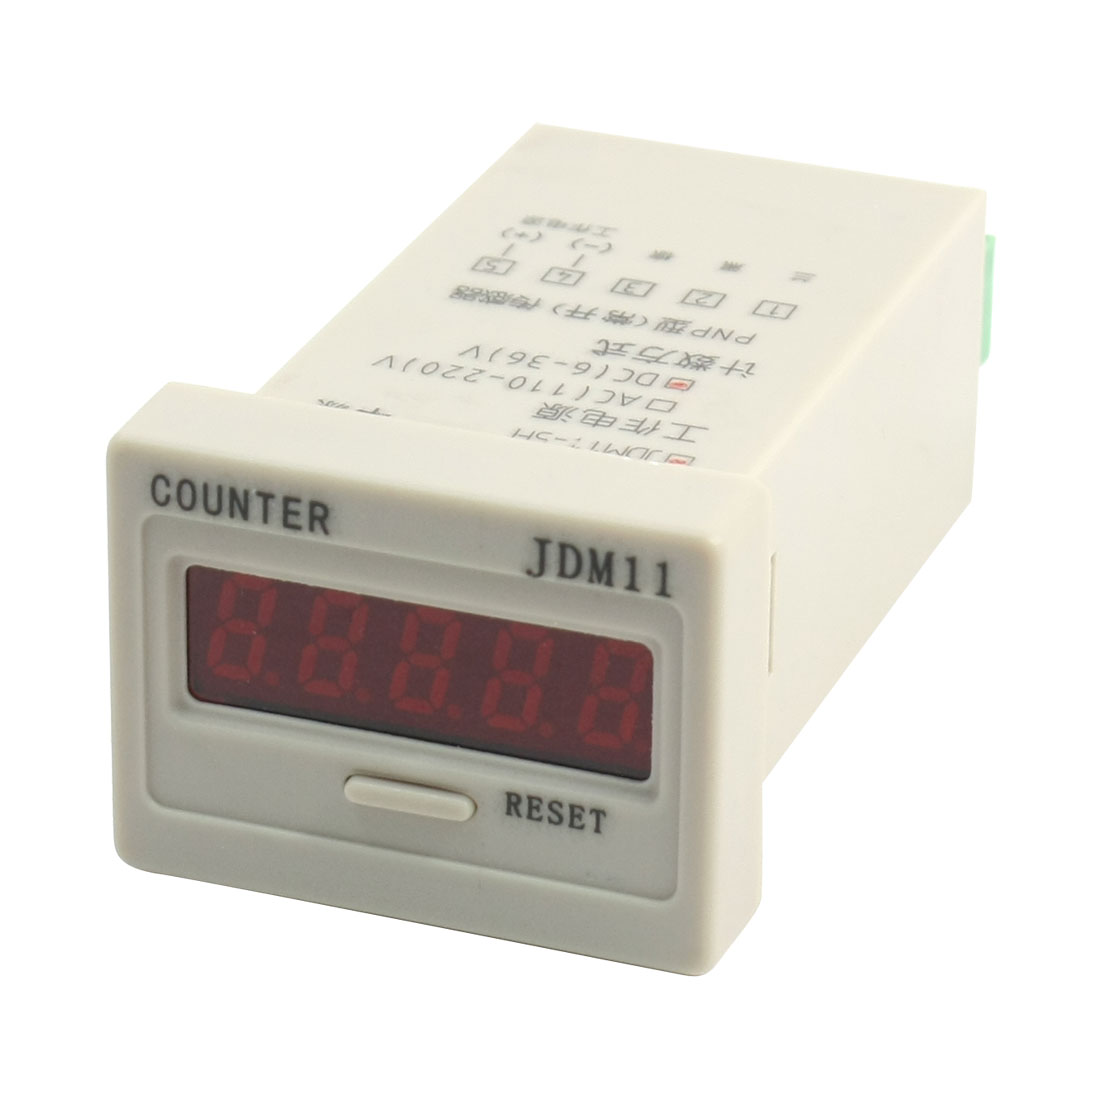 JDM11-5H Digit Display Electronic Counter Relay Control DC24V 0-99999